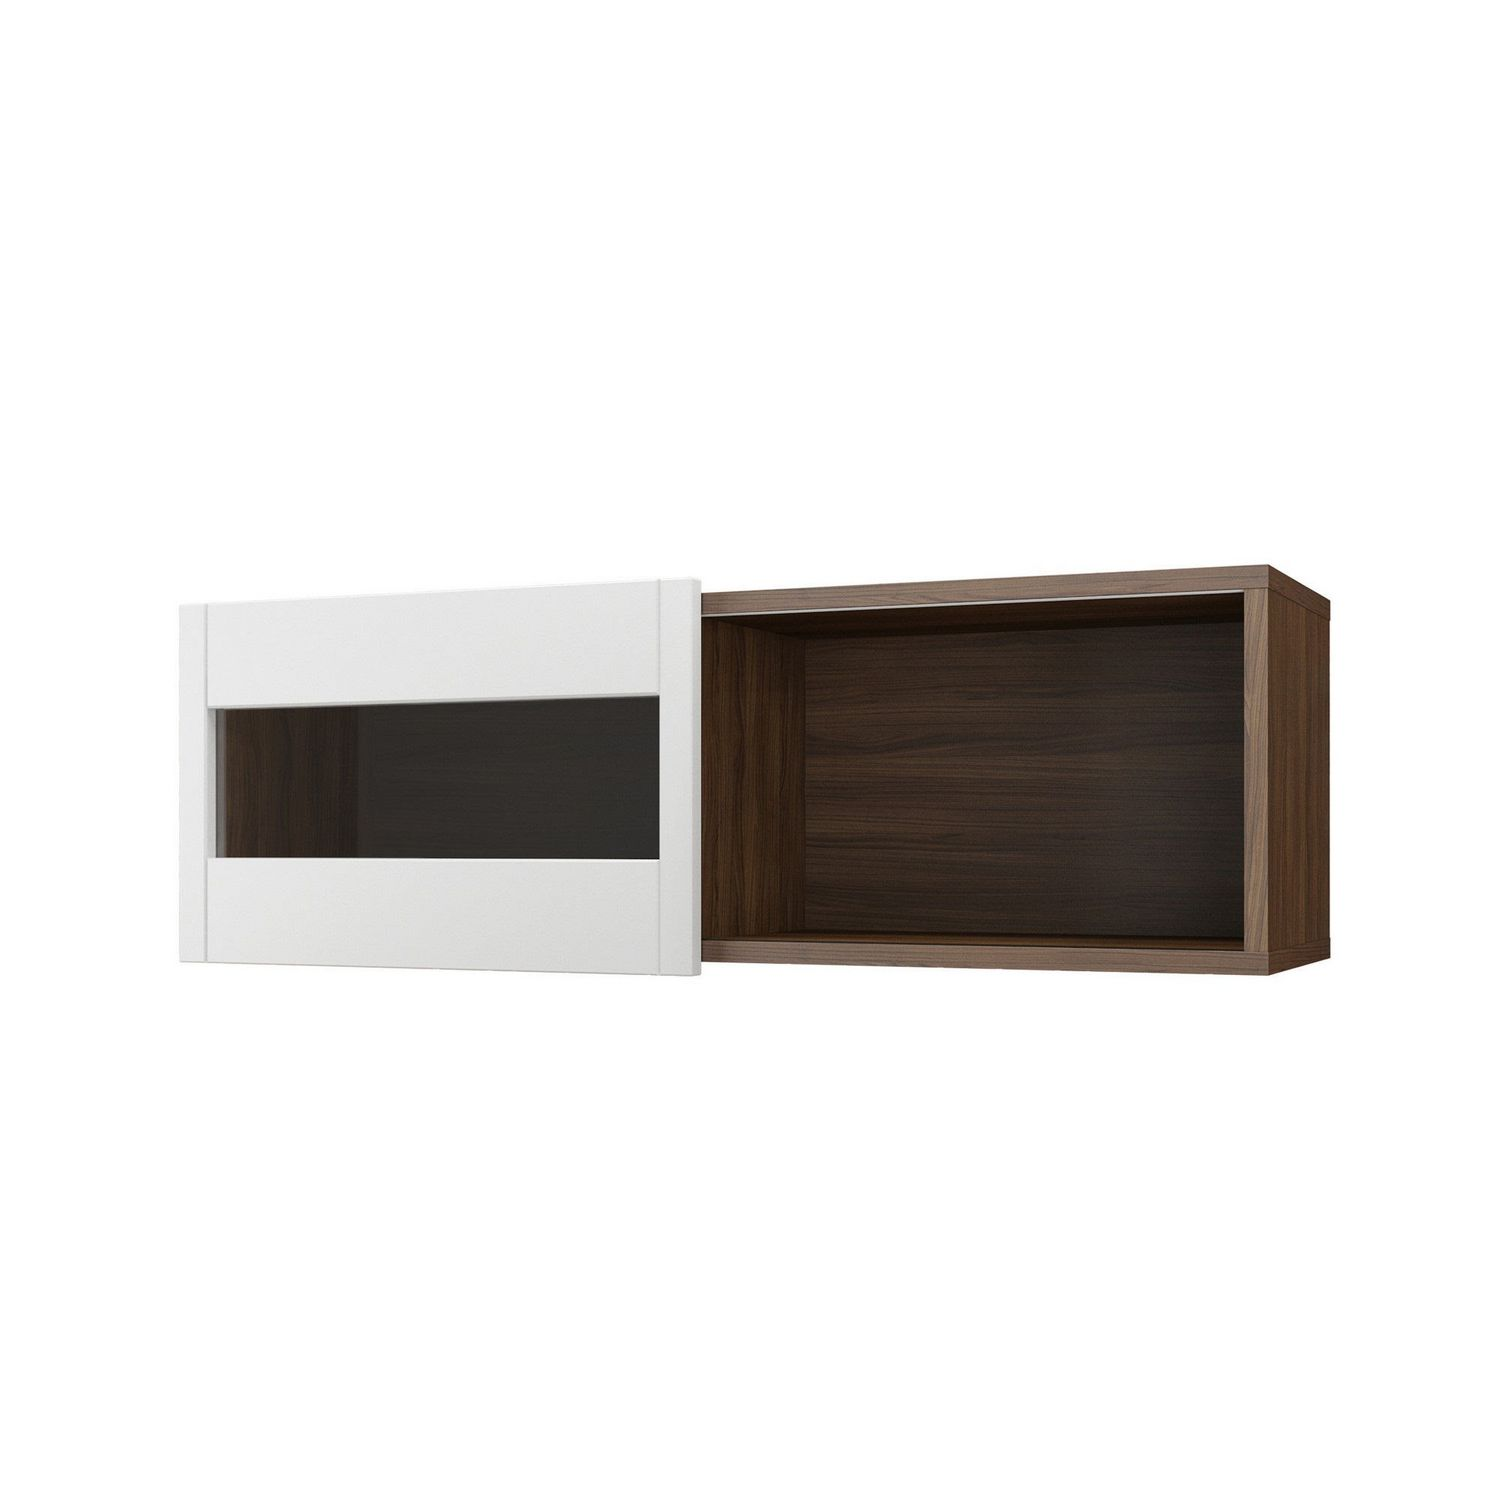 shelves shelf spr products st dis gb storage ikea ekby sten furniture cm white en wall